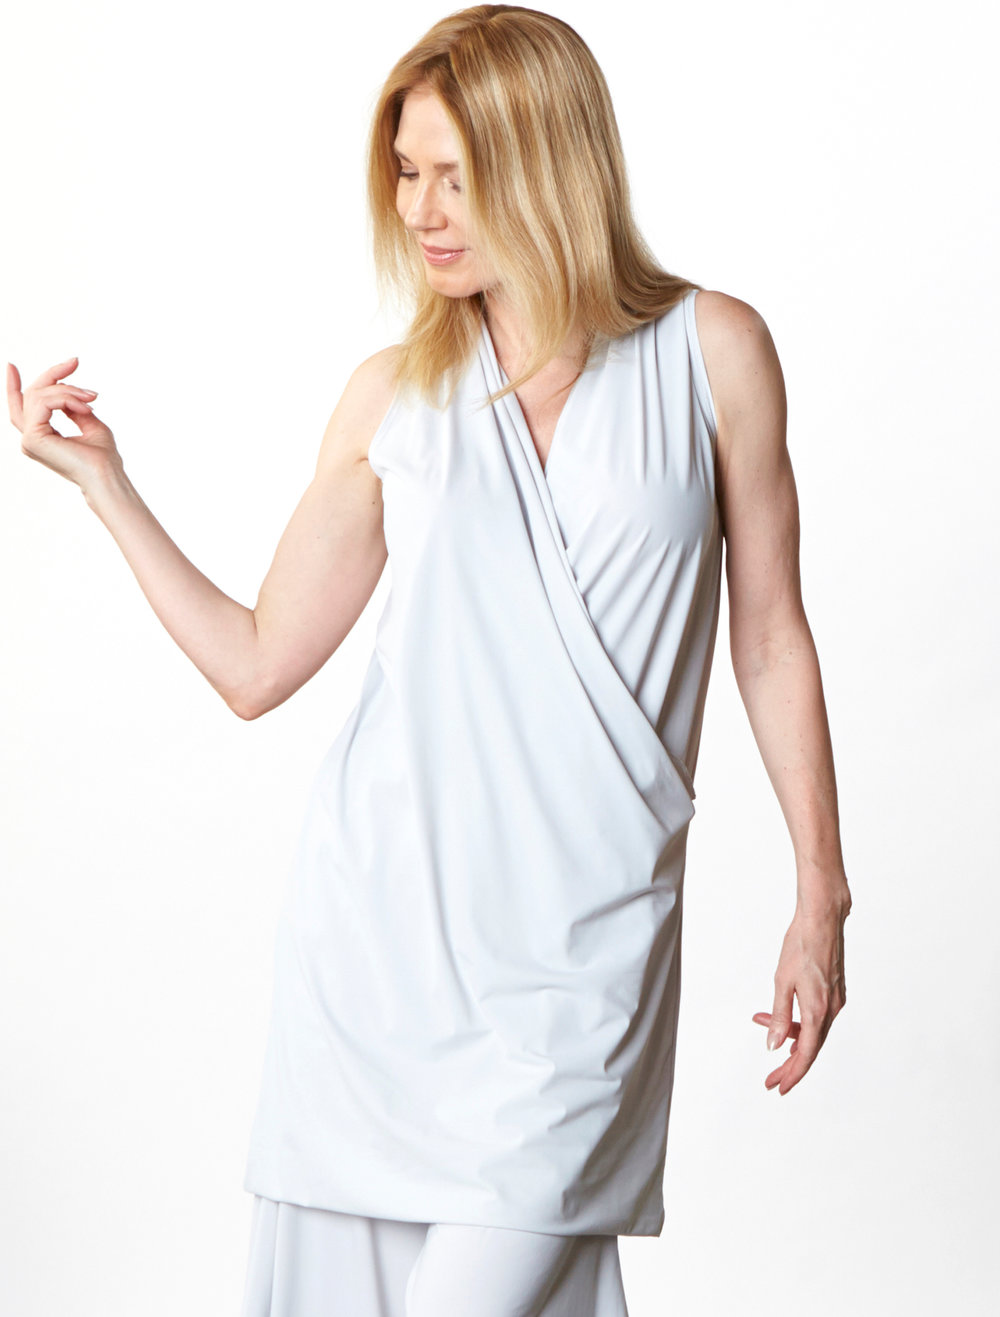 Twist Dress, Hamish Pant in Silver Italian Microfiber Jersey